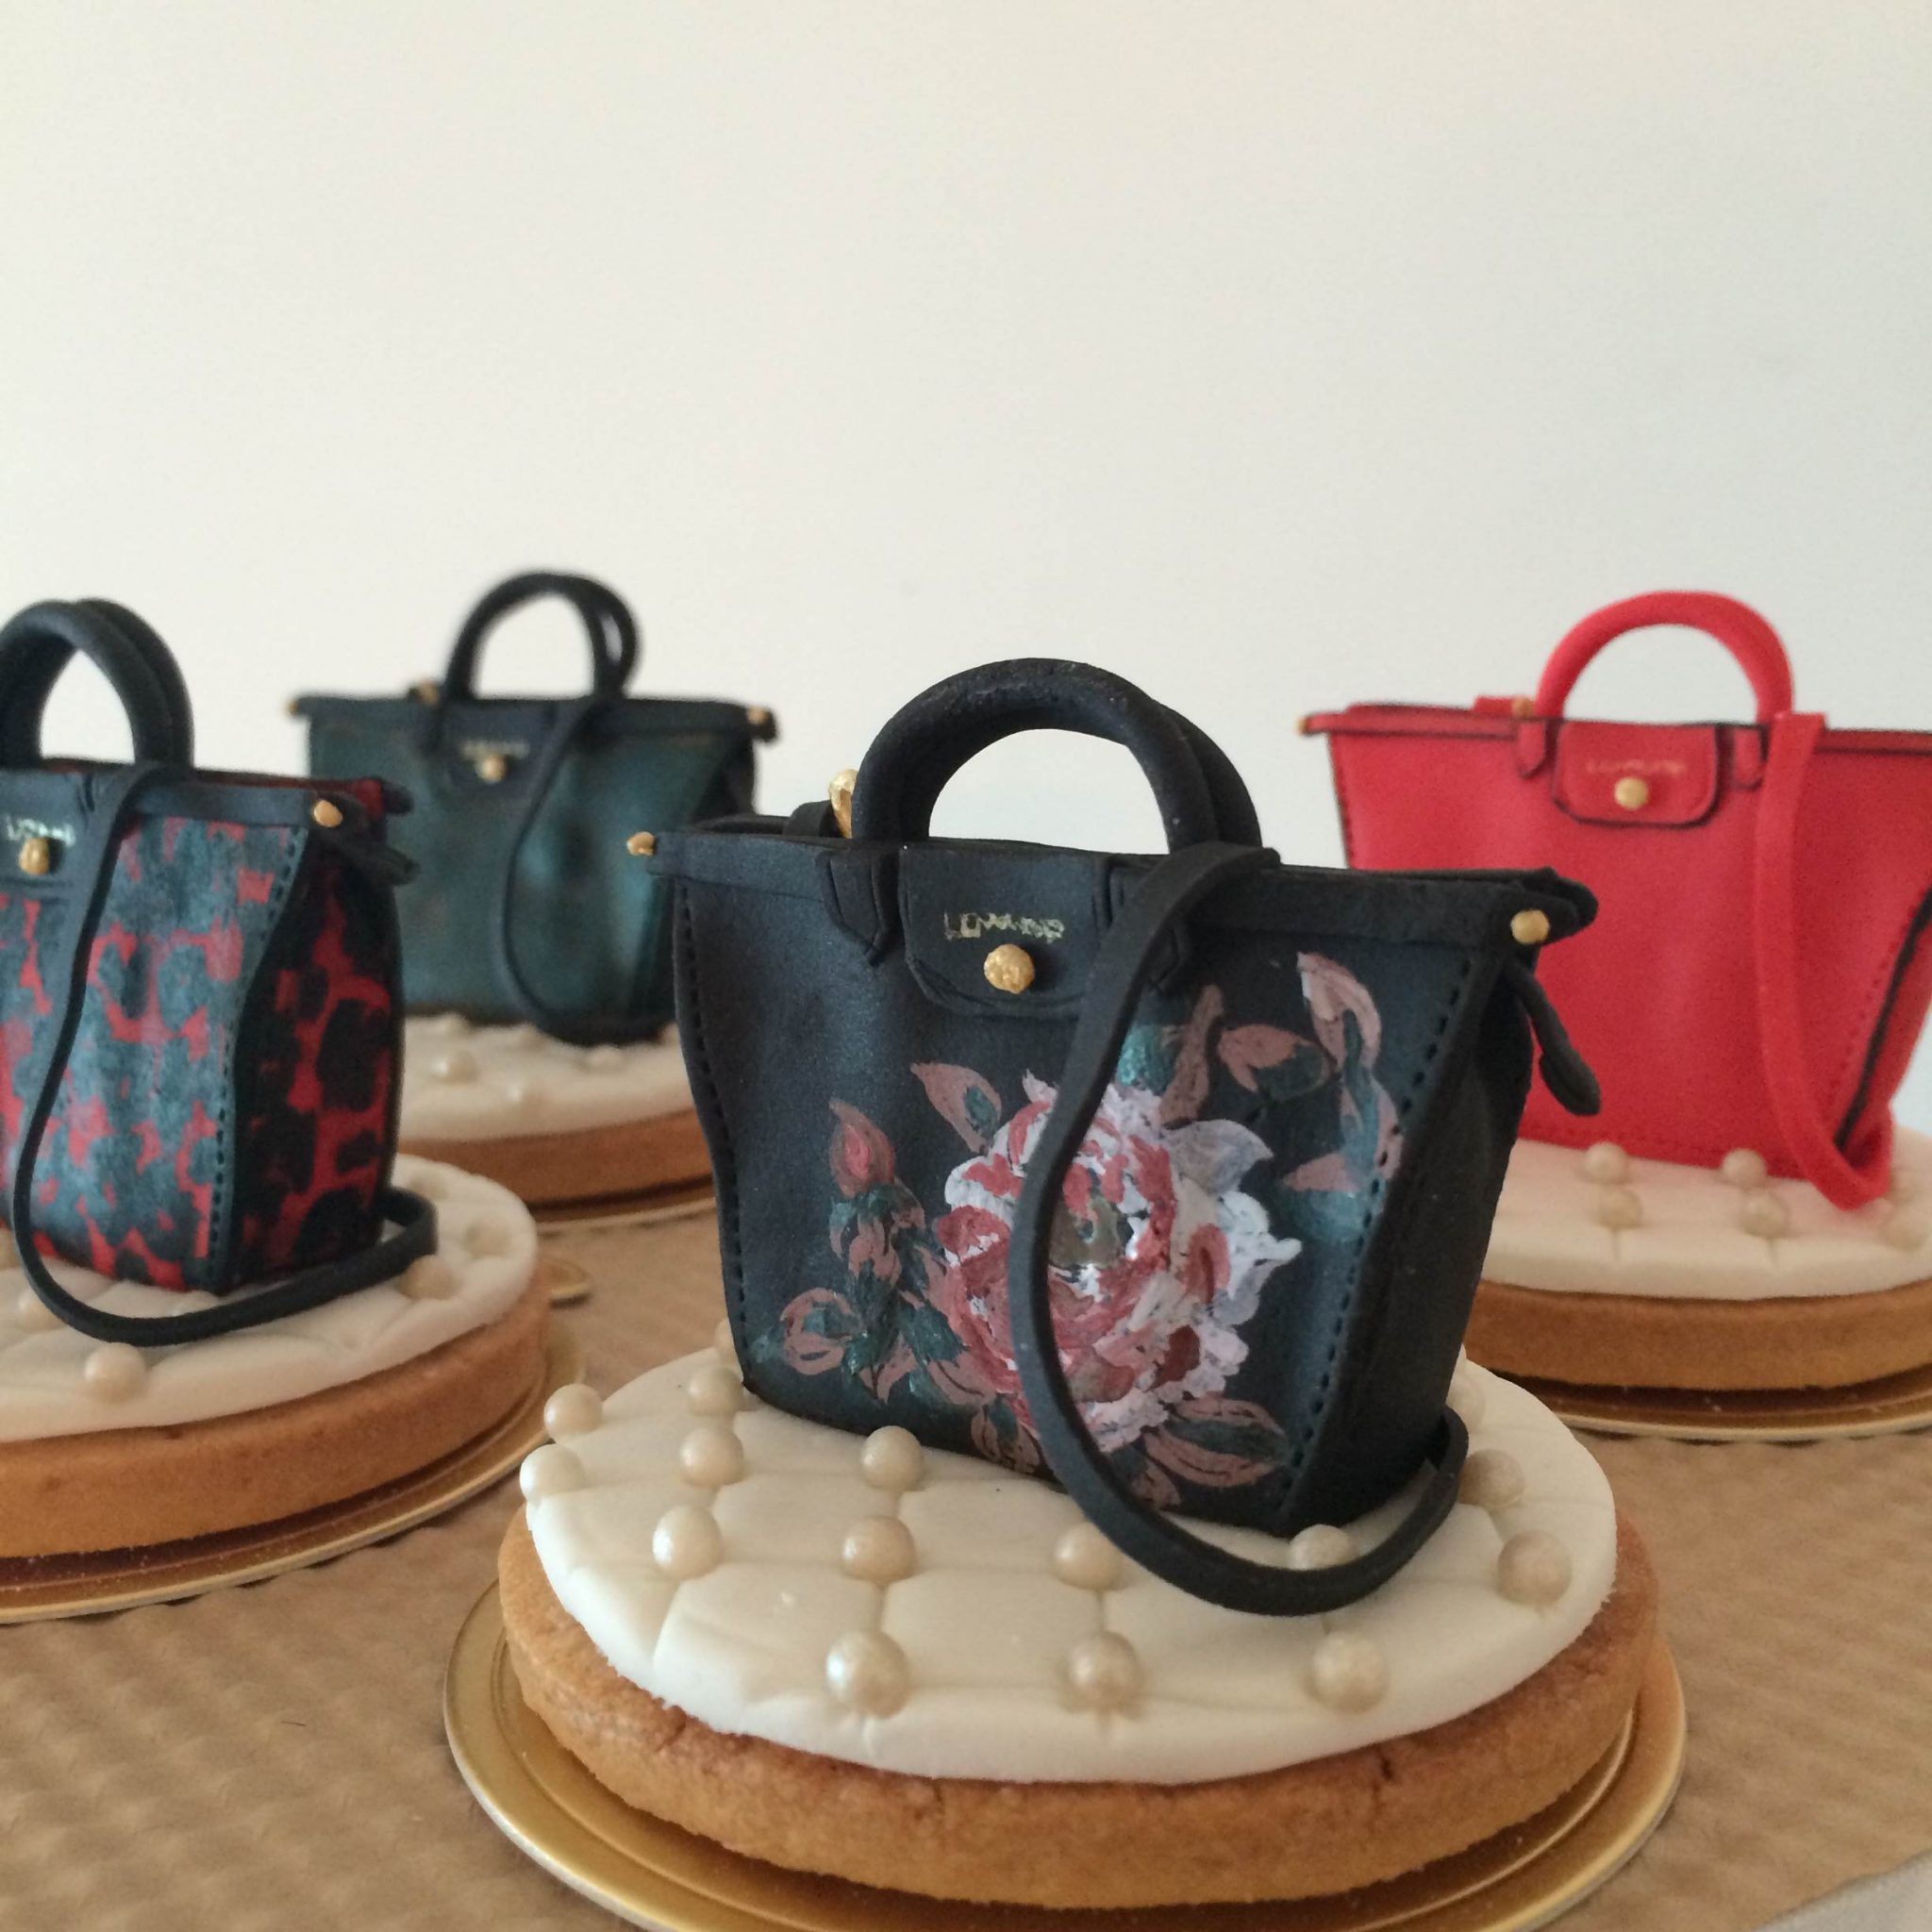 Longchamp Le Pliage Héritage decorated cookies by BRICK LANE Sweets